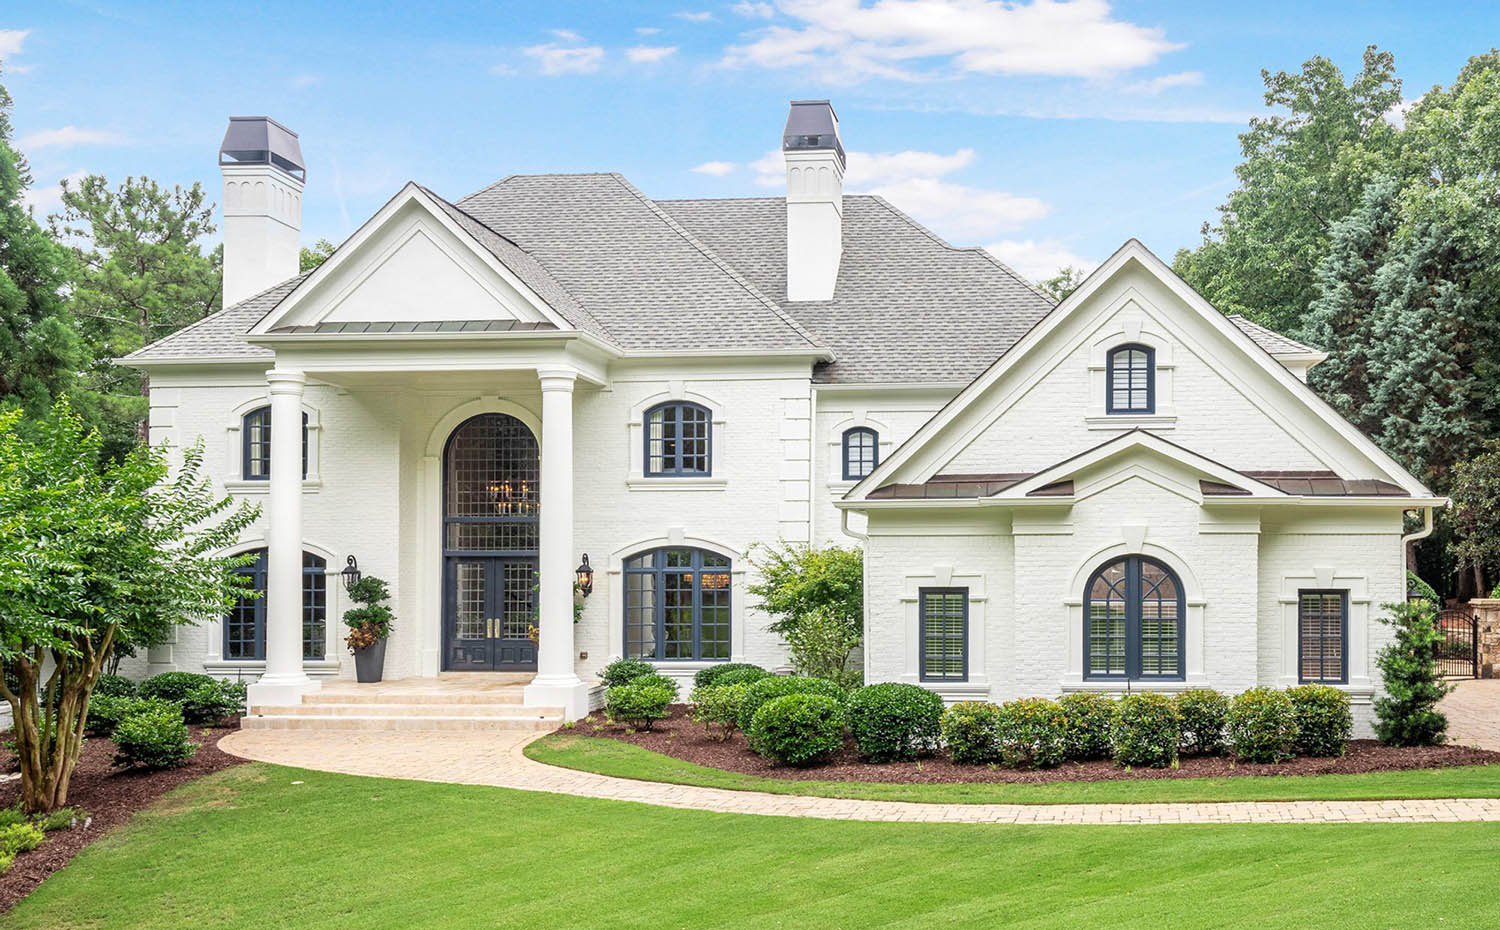 Traditional styled white brick house with stucco accents and trim. Gray shingled roof with brown metal accents. Huge front columns. Blue window and doors frames with a blue front door.